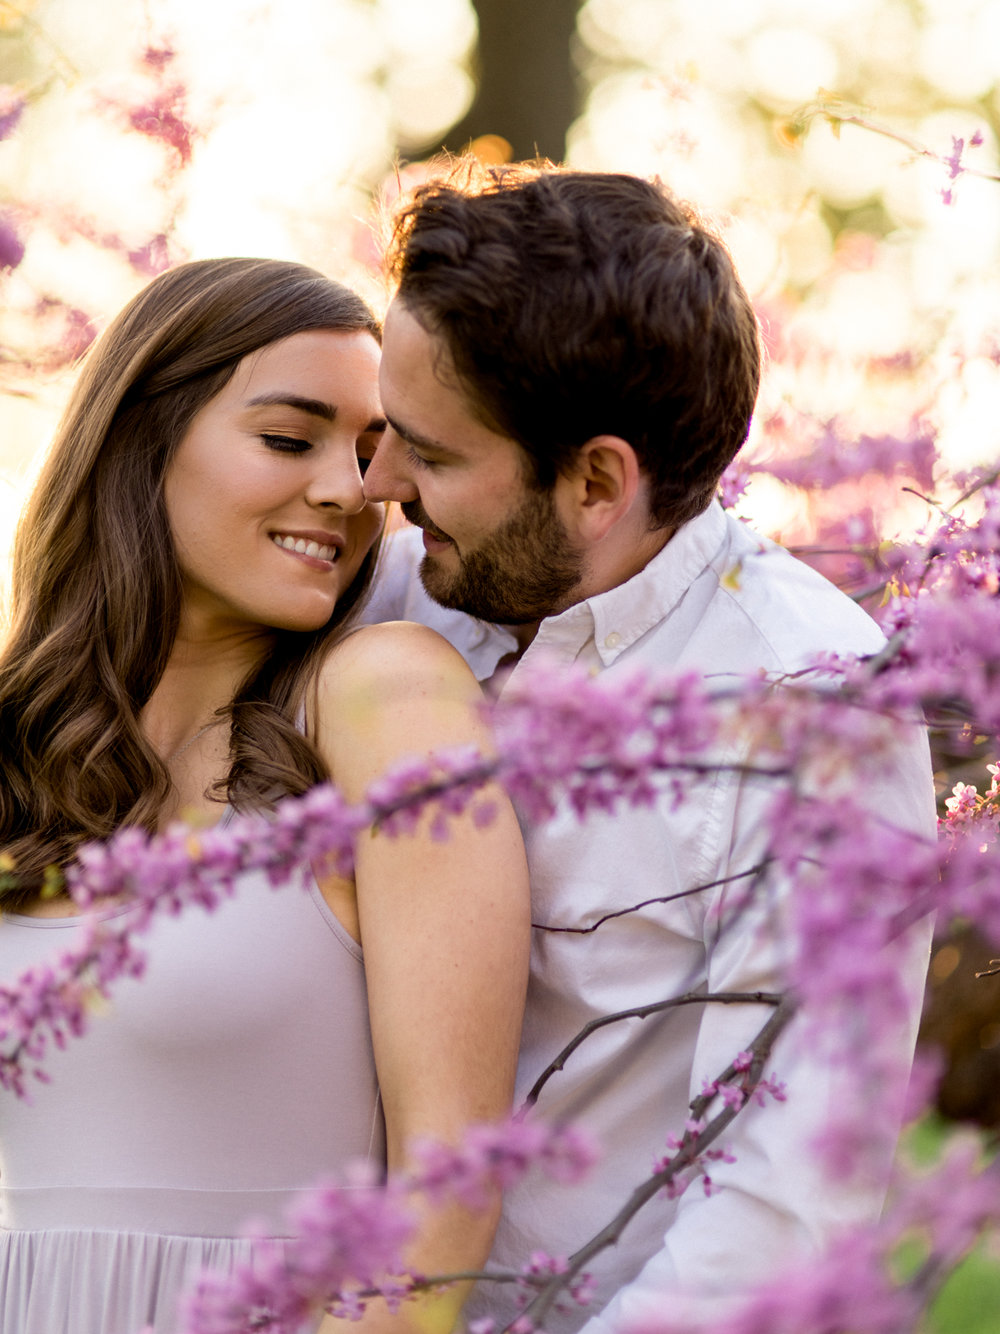 Chris & Heather's Engagement Session in Vineland Ontario Spring Blossoms Trees by Hush Hush Photography & Film Aidan Hennebry - 32.jpg